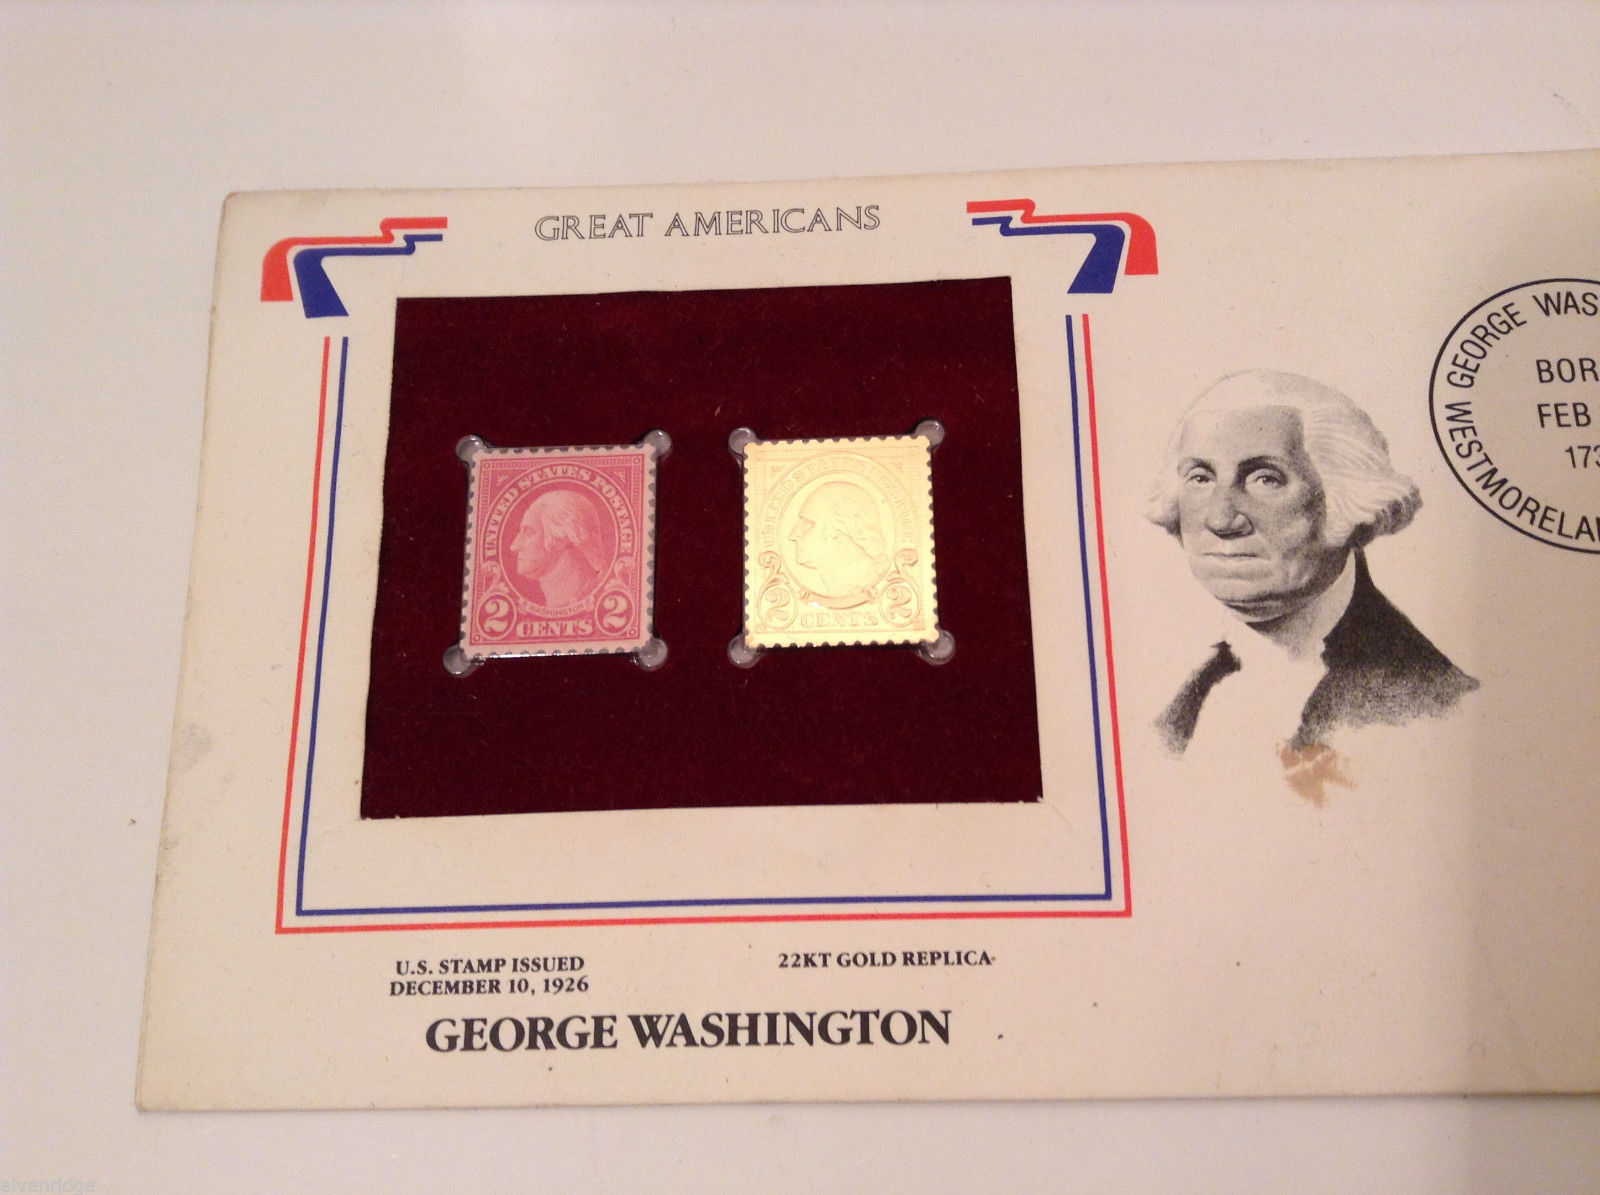 George Washington Postal Commemorative 2 Cents 22KT Gold Replica Stamp Set